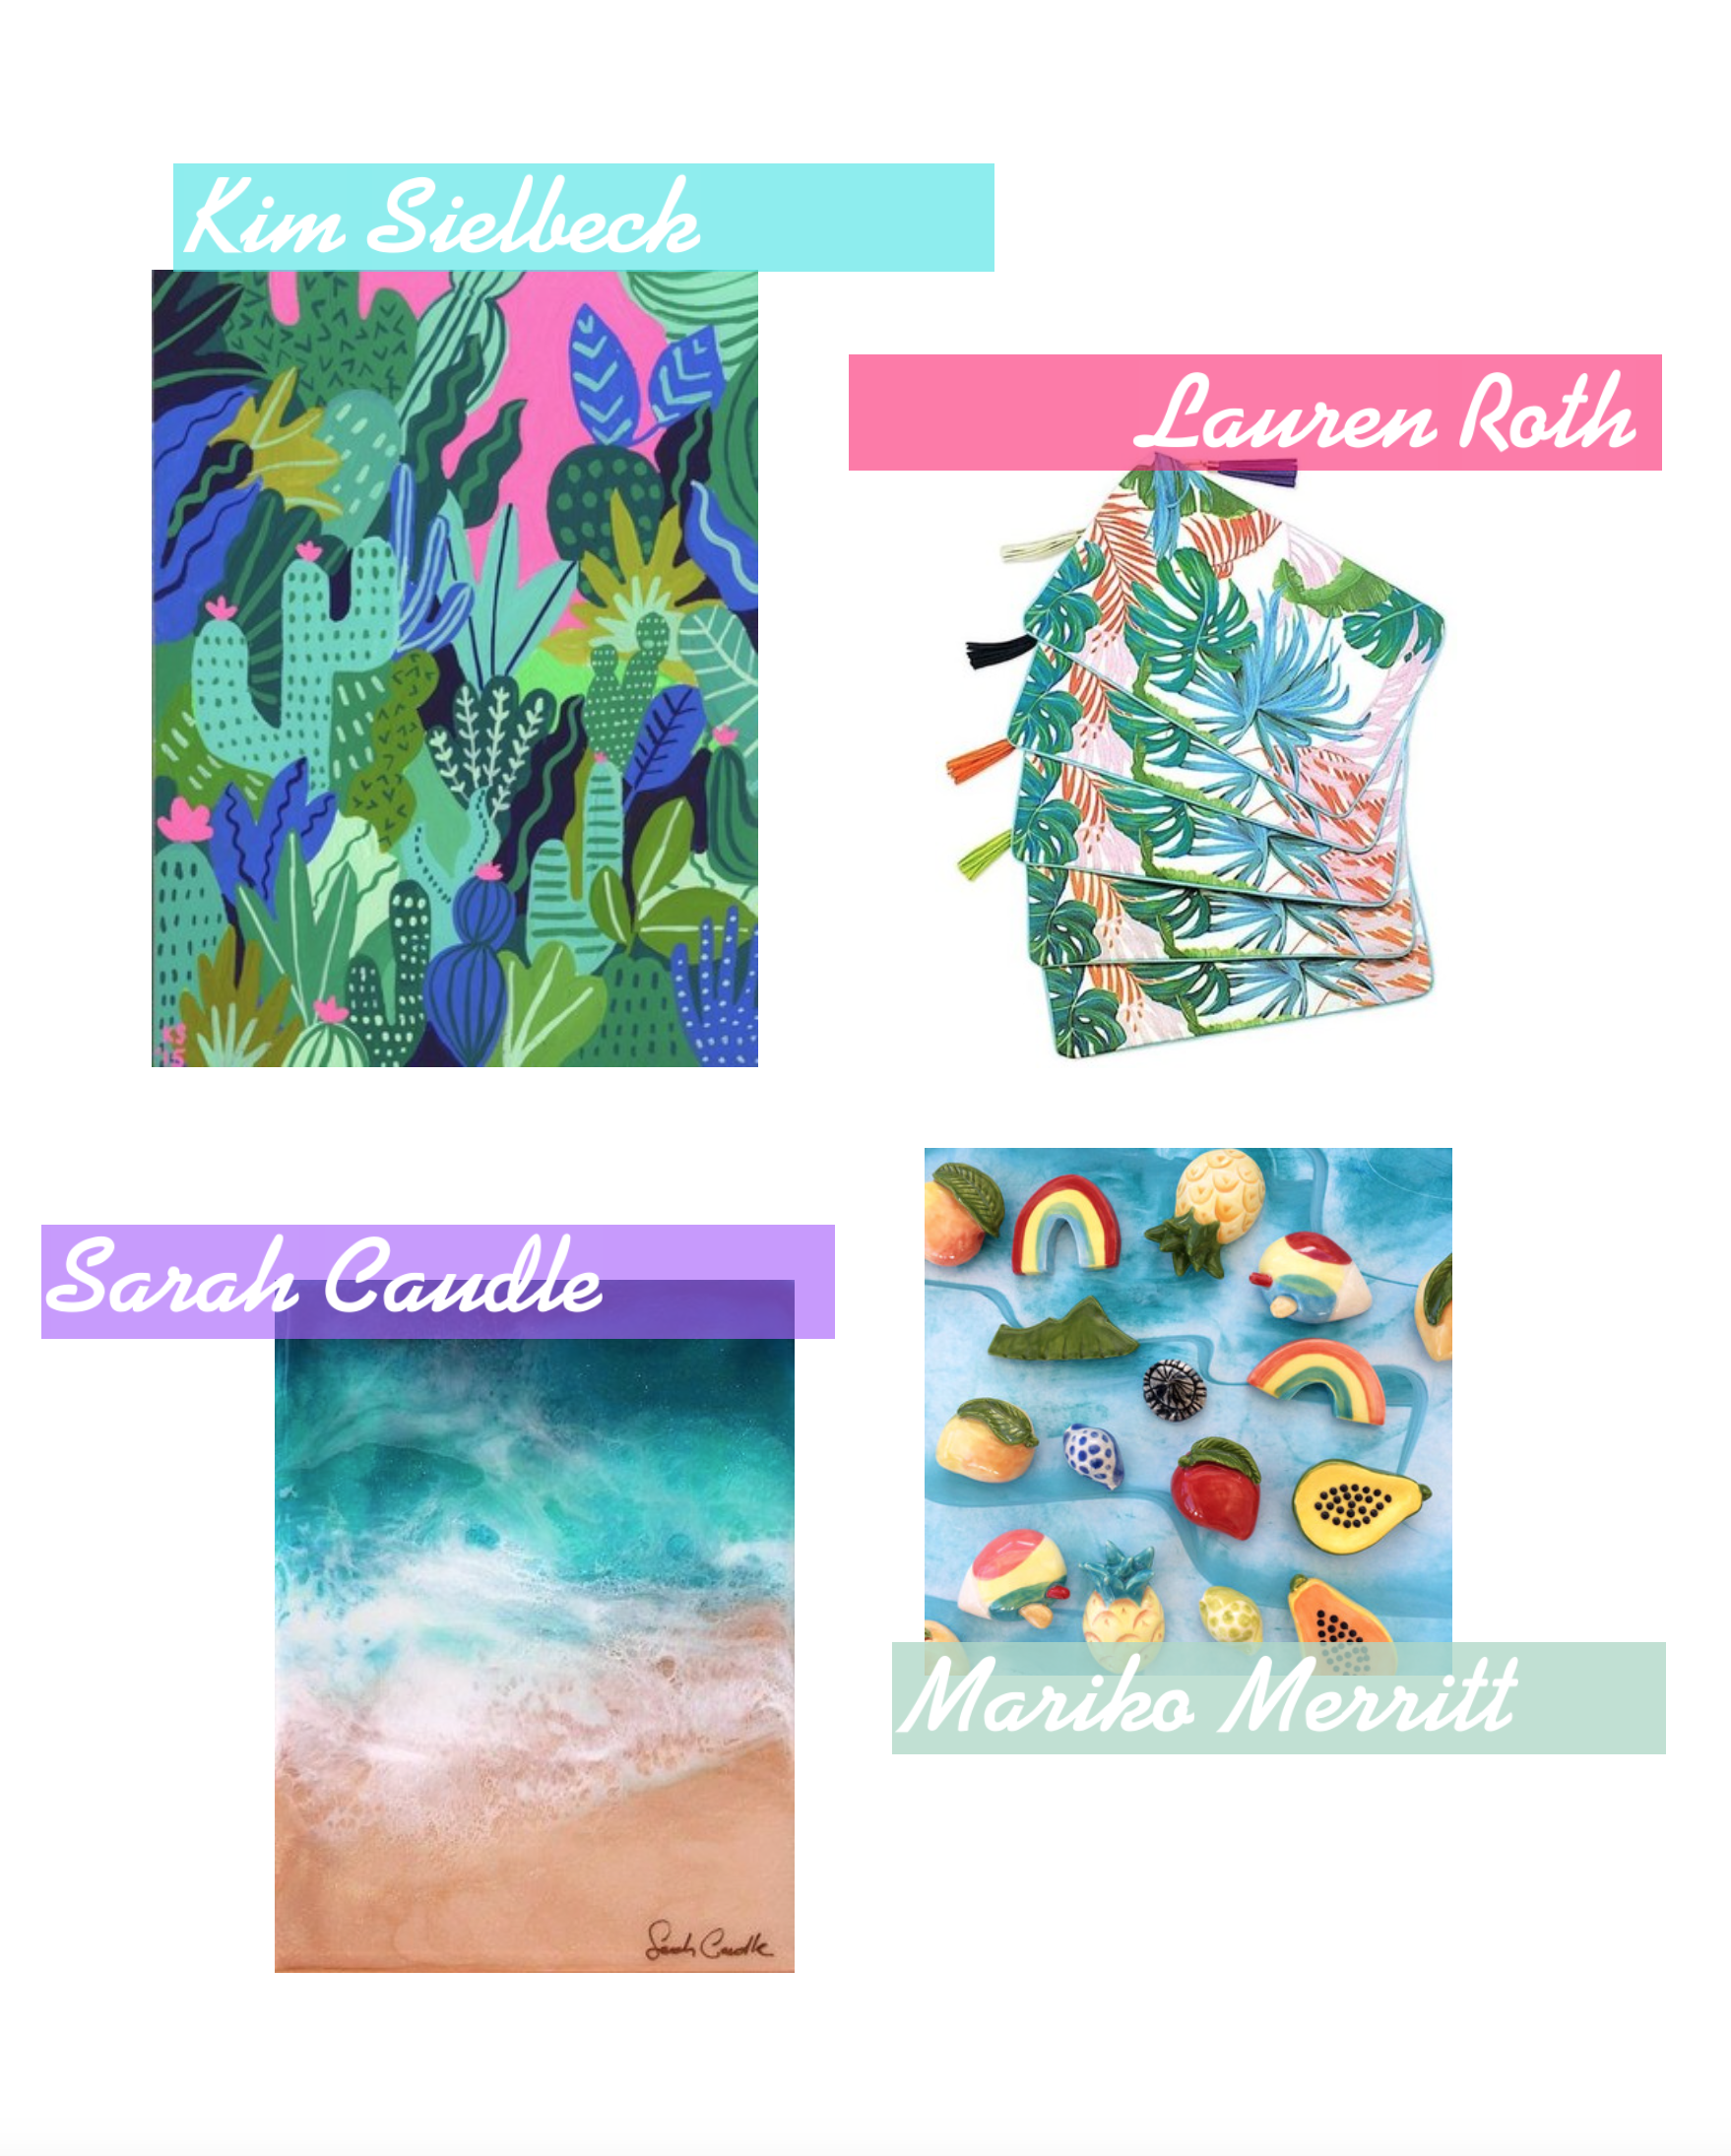 Loving Lately - Female Artist Edition - Kim Sielbeck - Sarah Caudle - Mariko Merritt - Lauren Roth - Hawaii Artists - Communikait by Kait Hanson